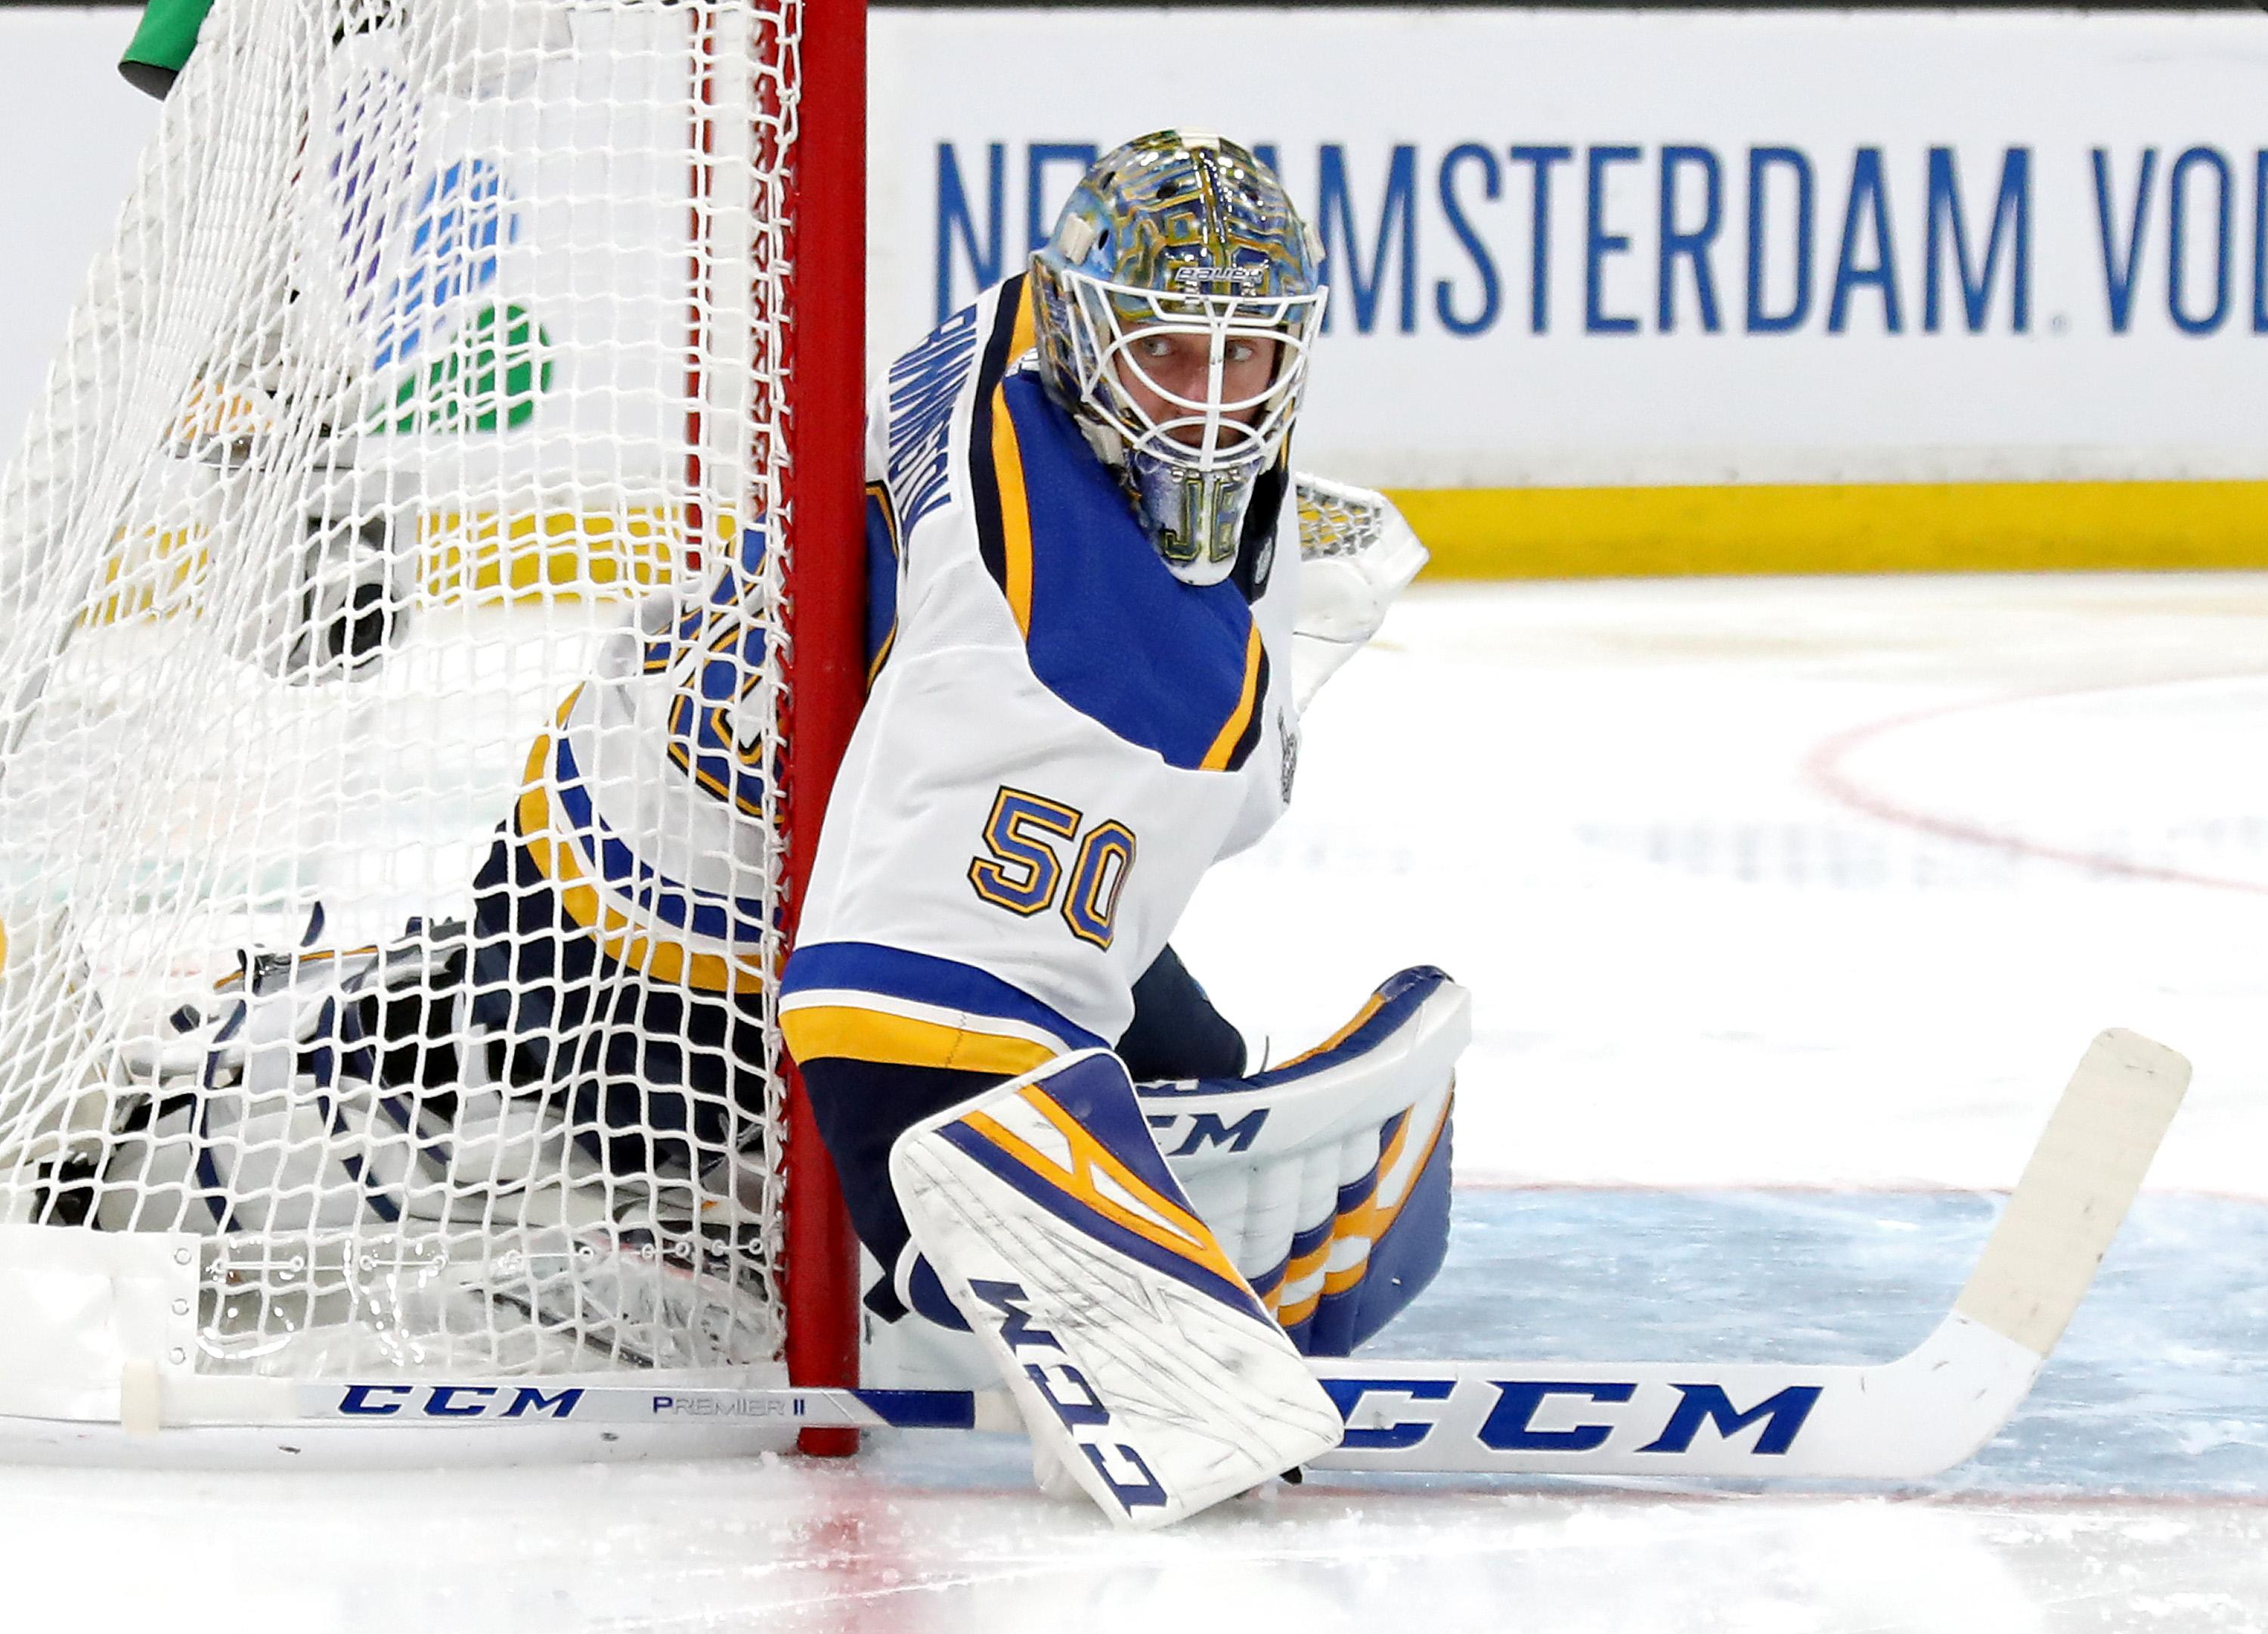 Blues bettor turns $400 into $100K after refusing to hedge